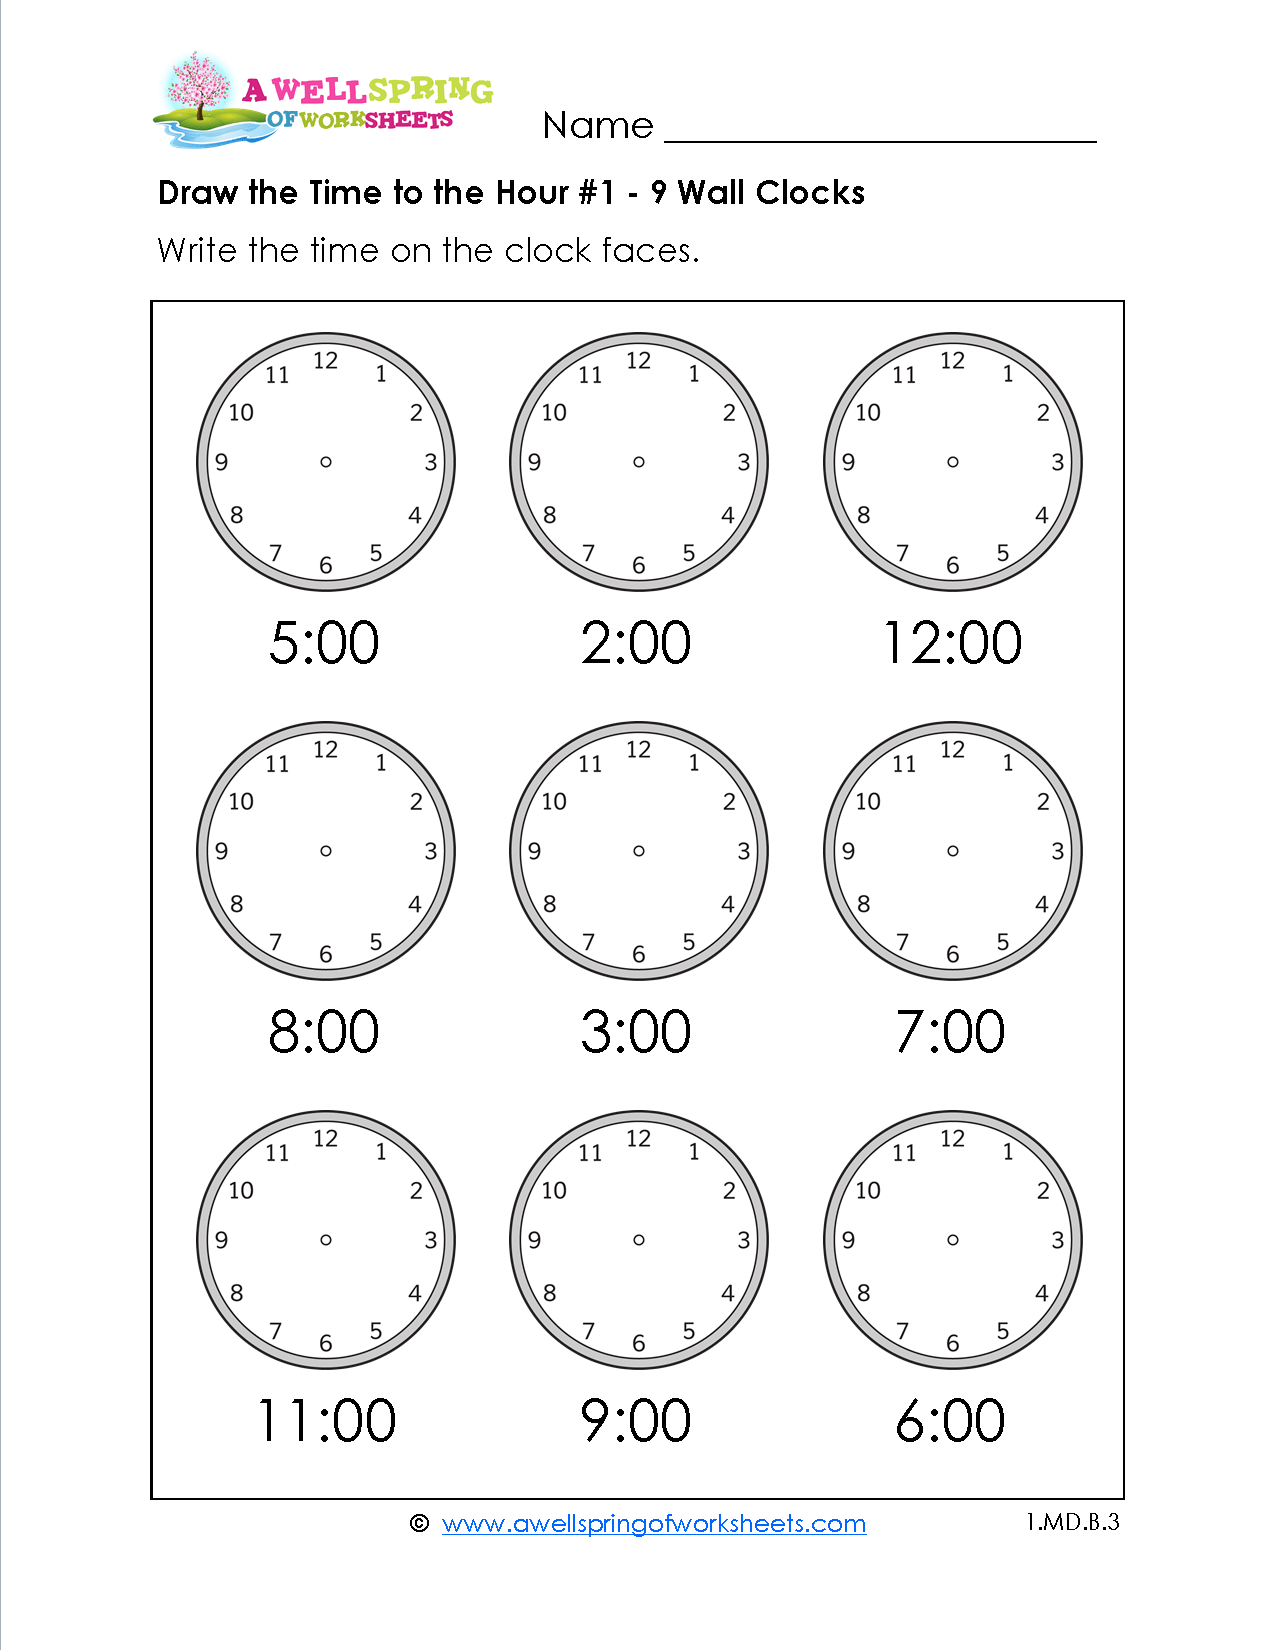 Draw The Time To The Hour Worksheets For First Grade Kids Draw The Hour And Minute Hands On